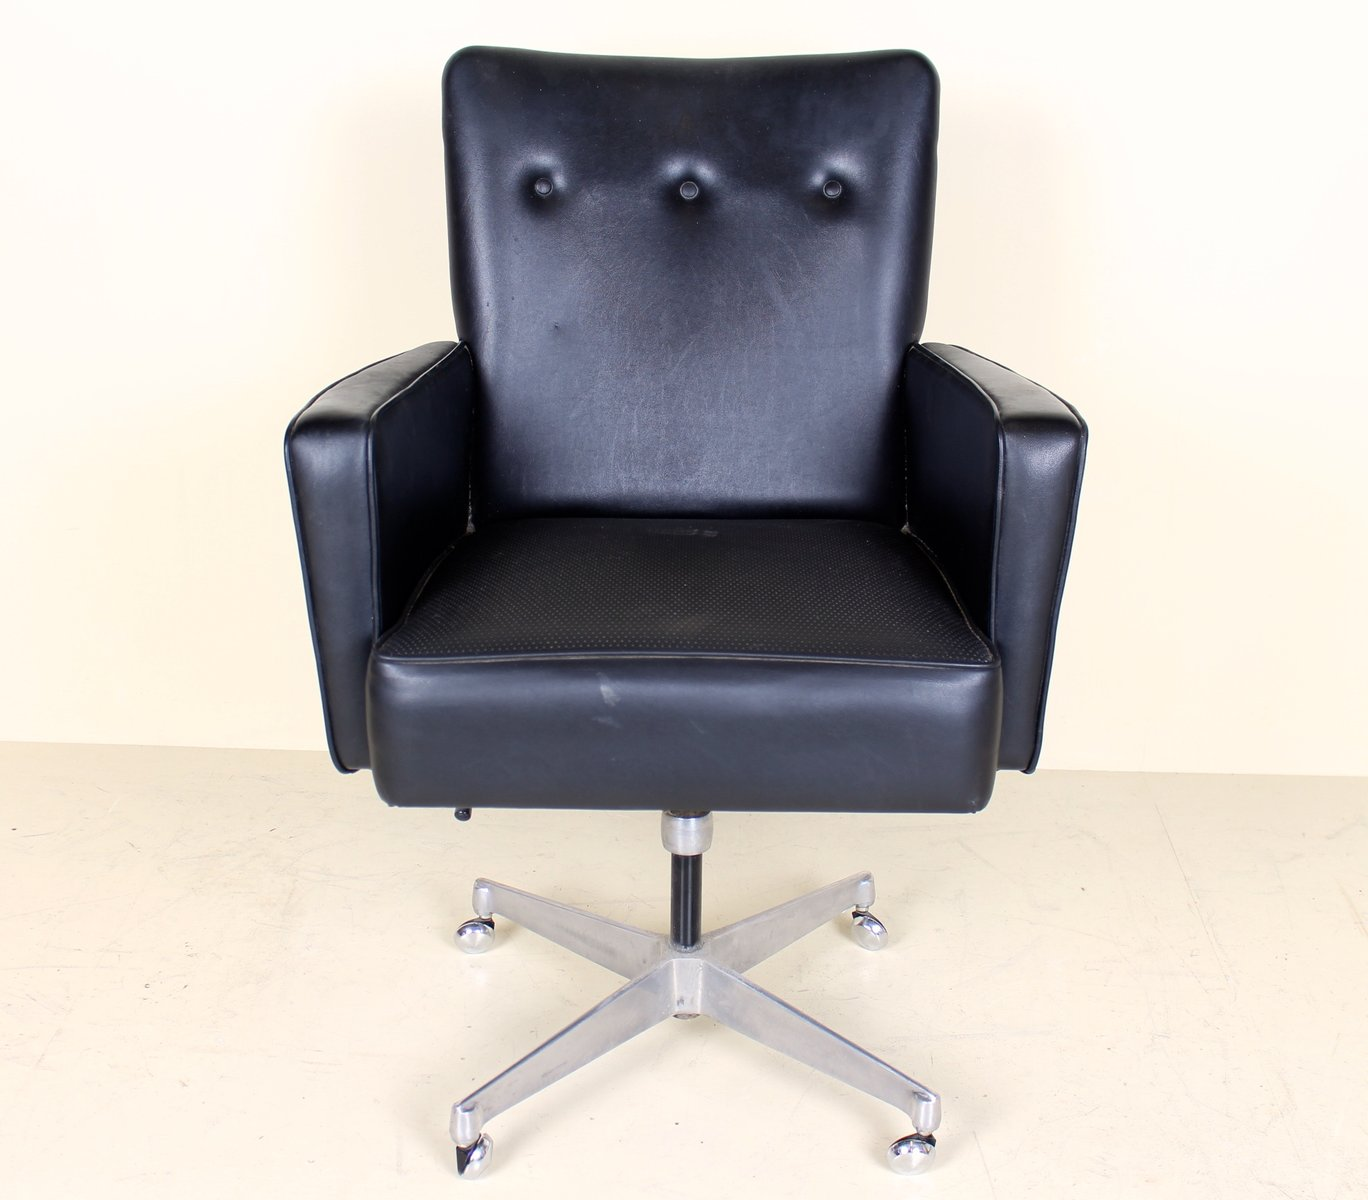 Astonishing Vintage Swivel Desk Office Chair In Chrome Squirreltailoven Fun Painted Chair Ideas Images Squirreltailovenorg